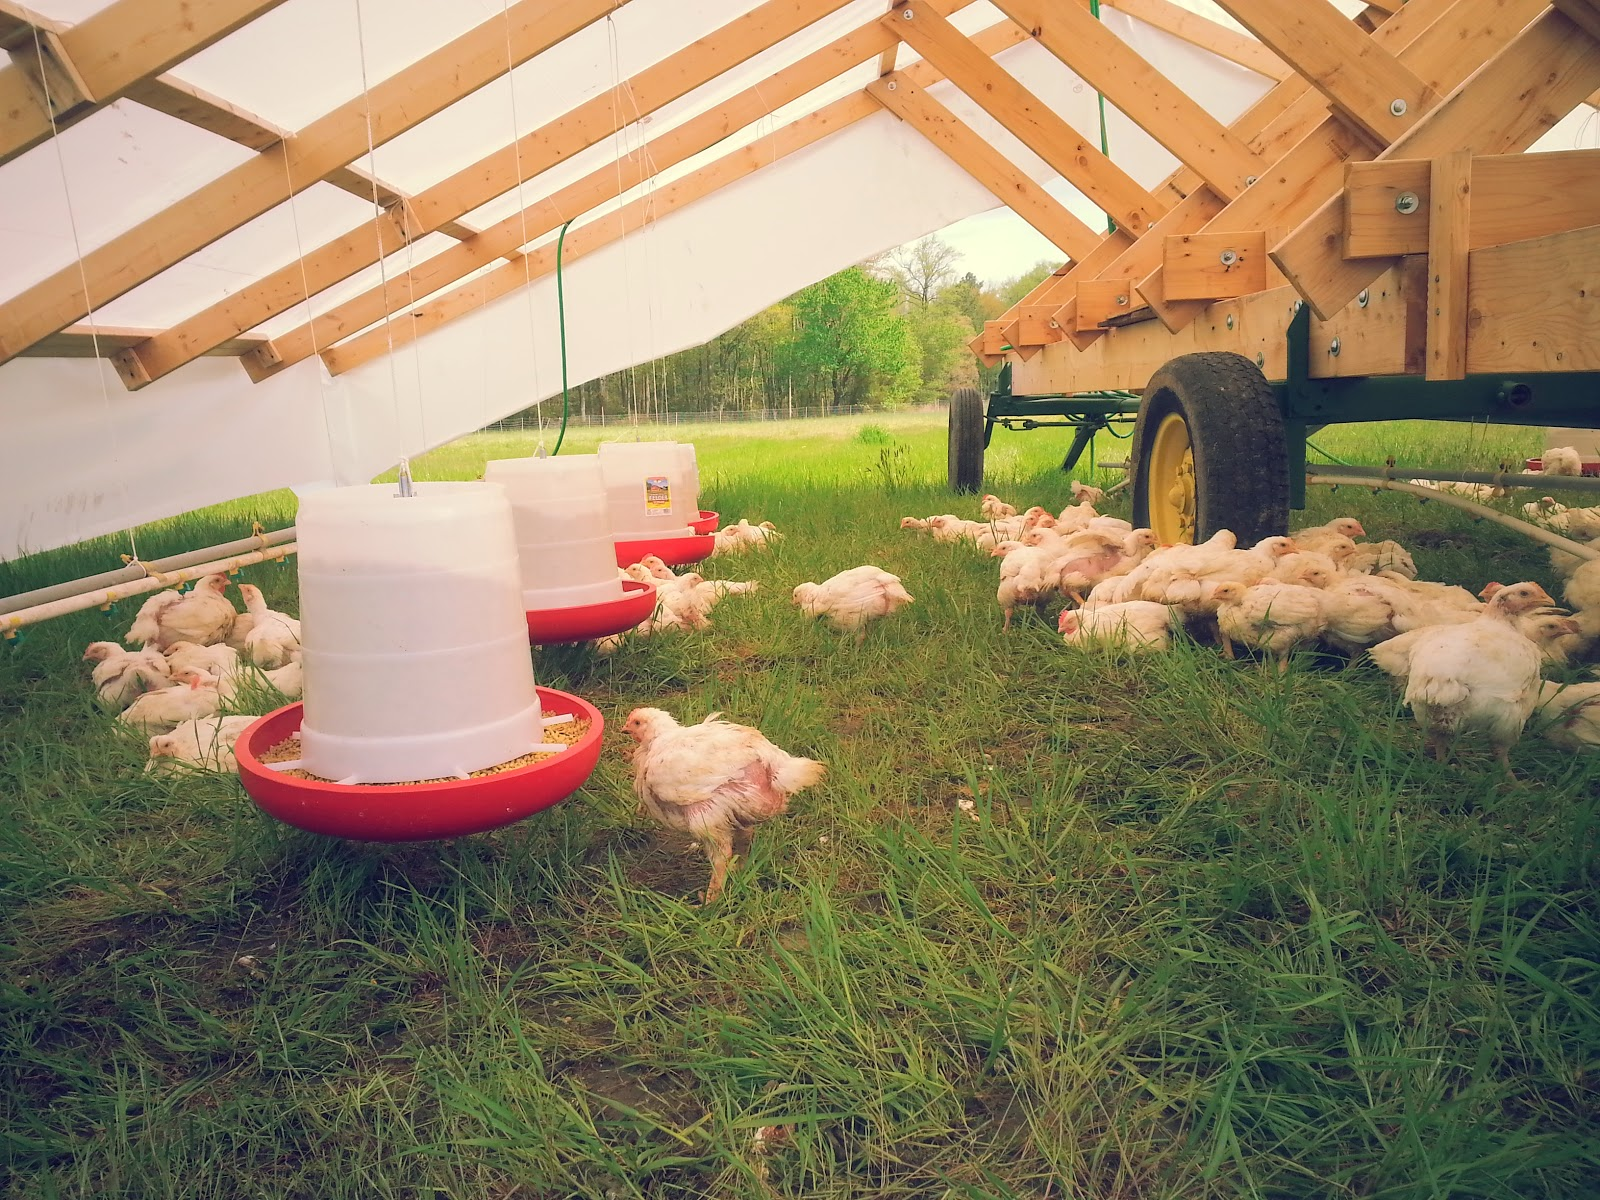 Summer-Fall Pastured Chicken Share